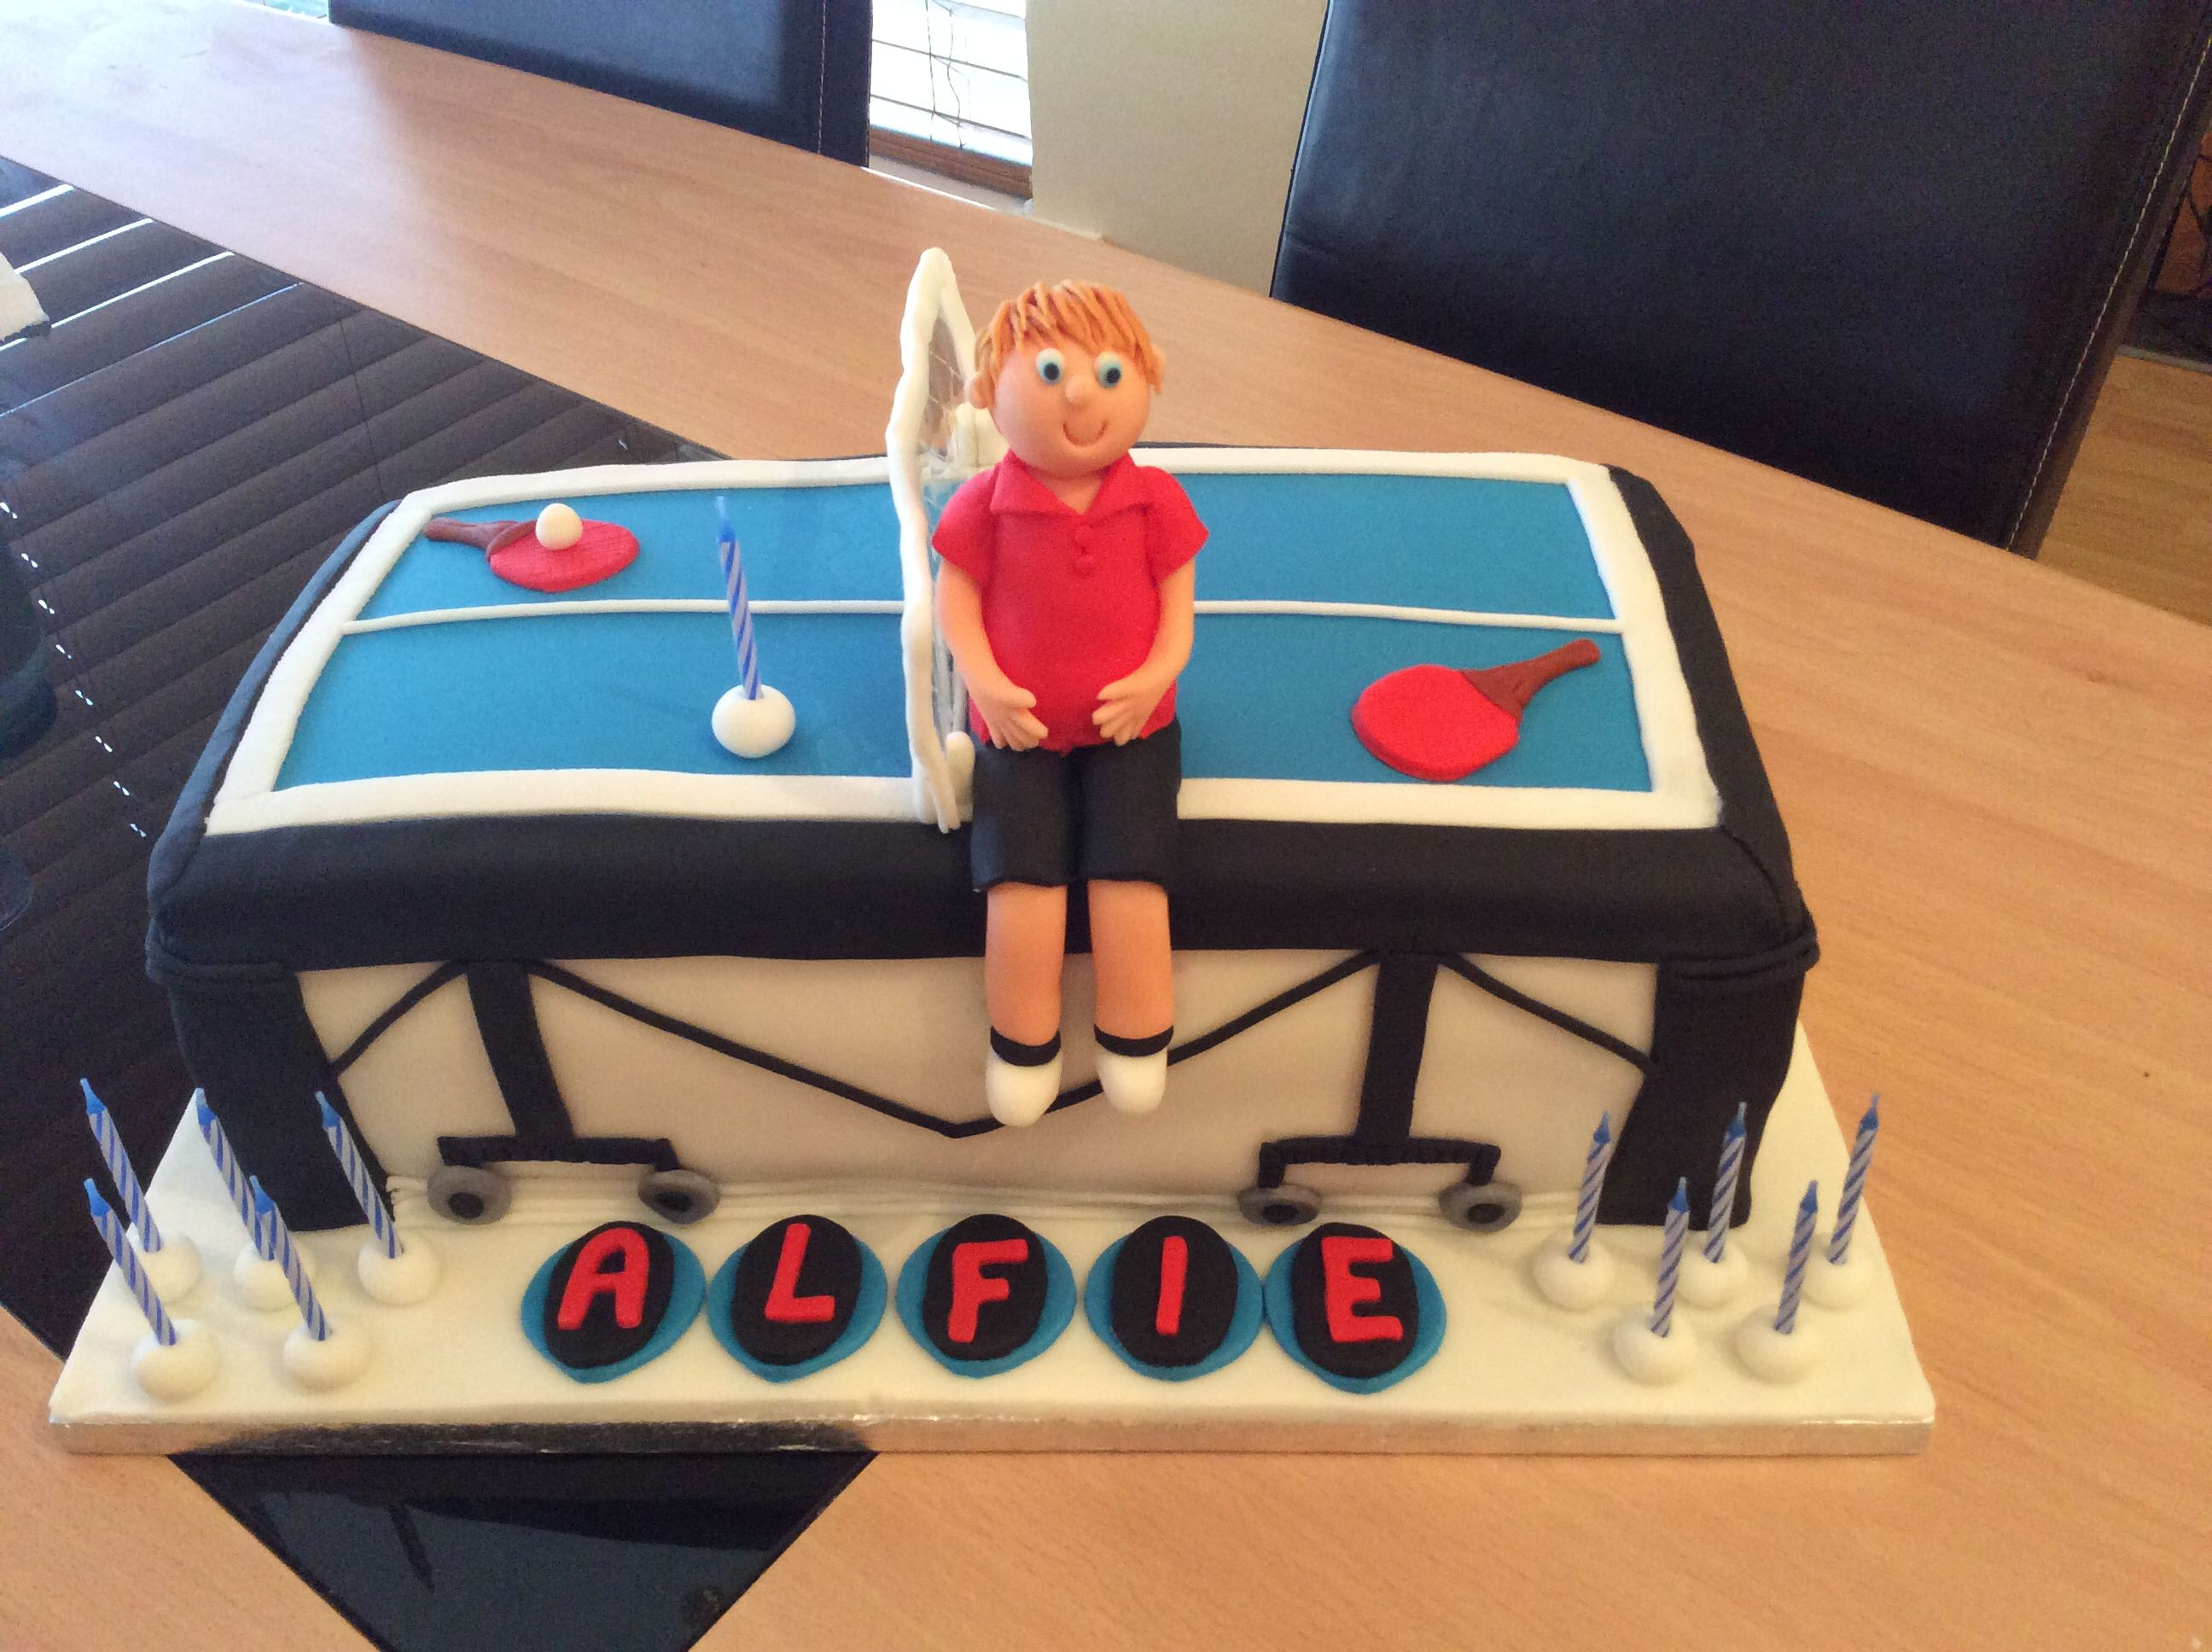 Table Tennis Cake By Tracey Davies Cakes